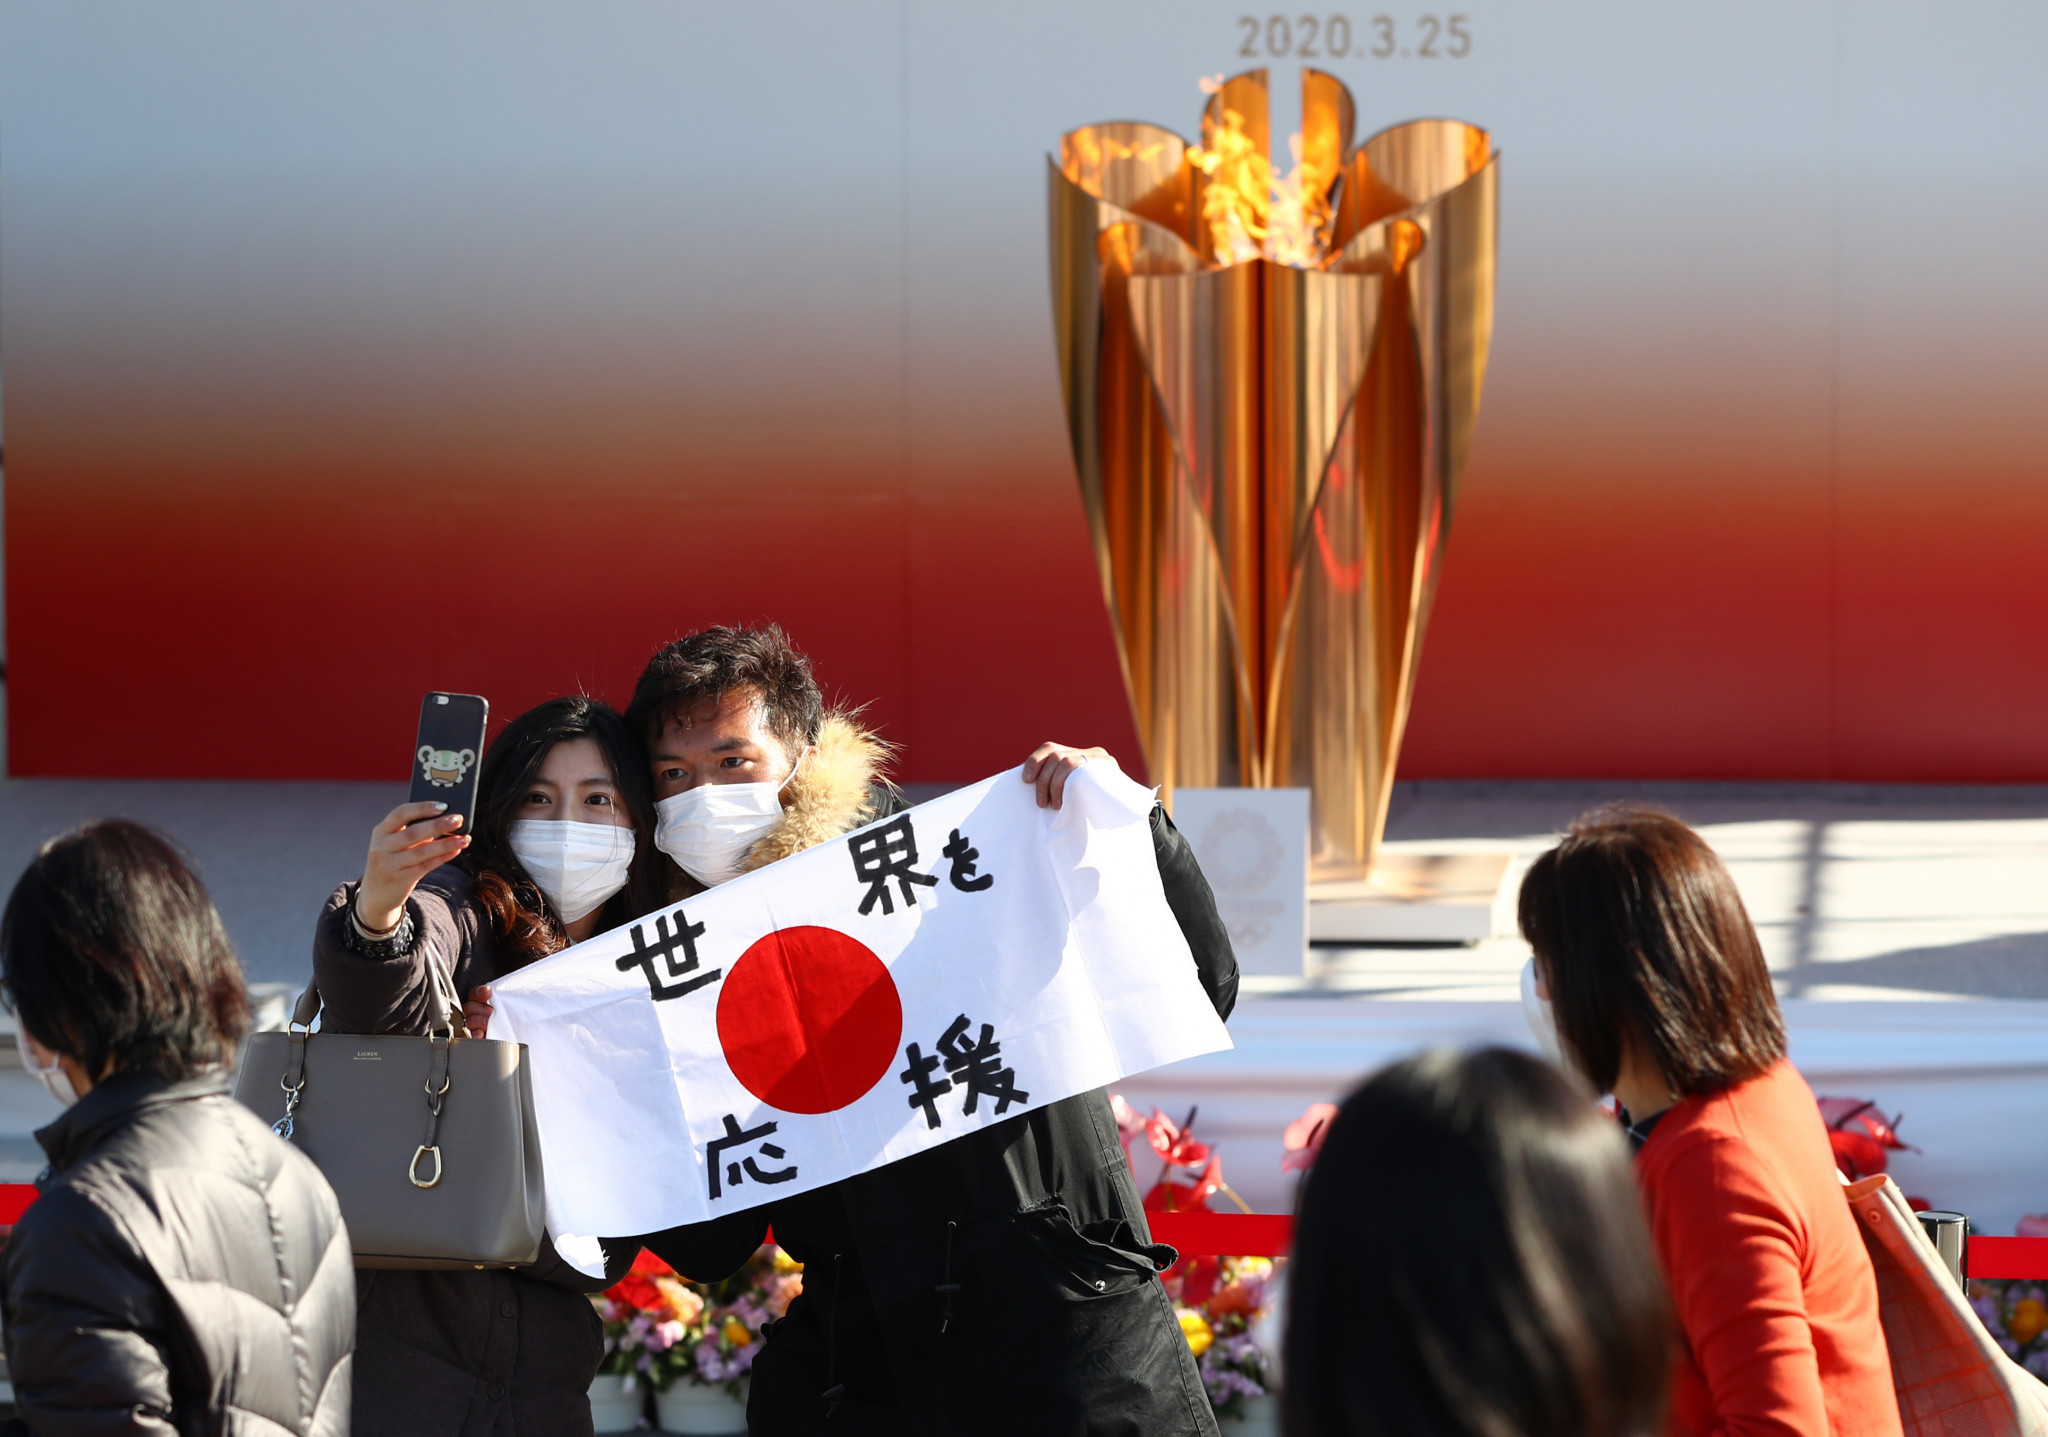 The Olympic Flame proved popular after arriving in Japan earlier this year ©Getty Images